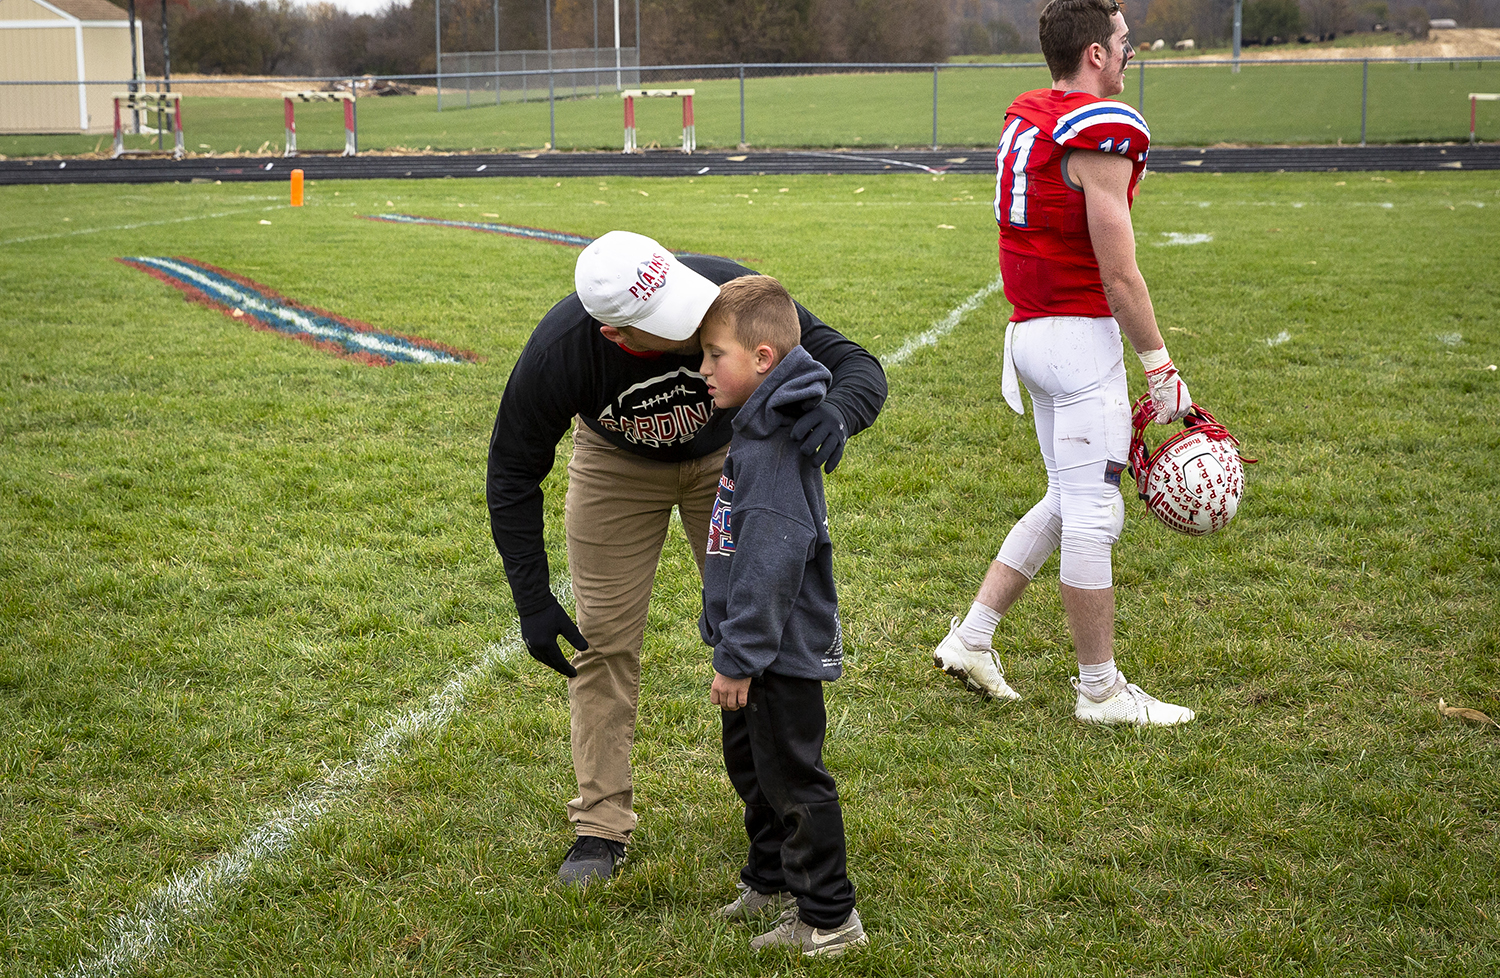 Pleasant Plains' Head Coach John Hambelton talks with his son, Ty, after the Cardinals' loss to Greenville in the Class 2A playoff game Saturday, Nov. 3, 2018 at Pleasant Plains High School in Pleasant Plains, Ill. [Rich Saal/The State Journal-Register]